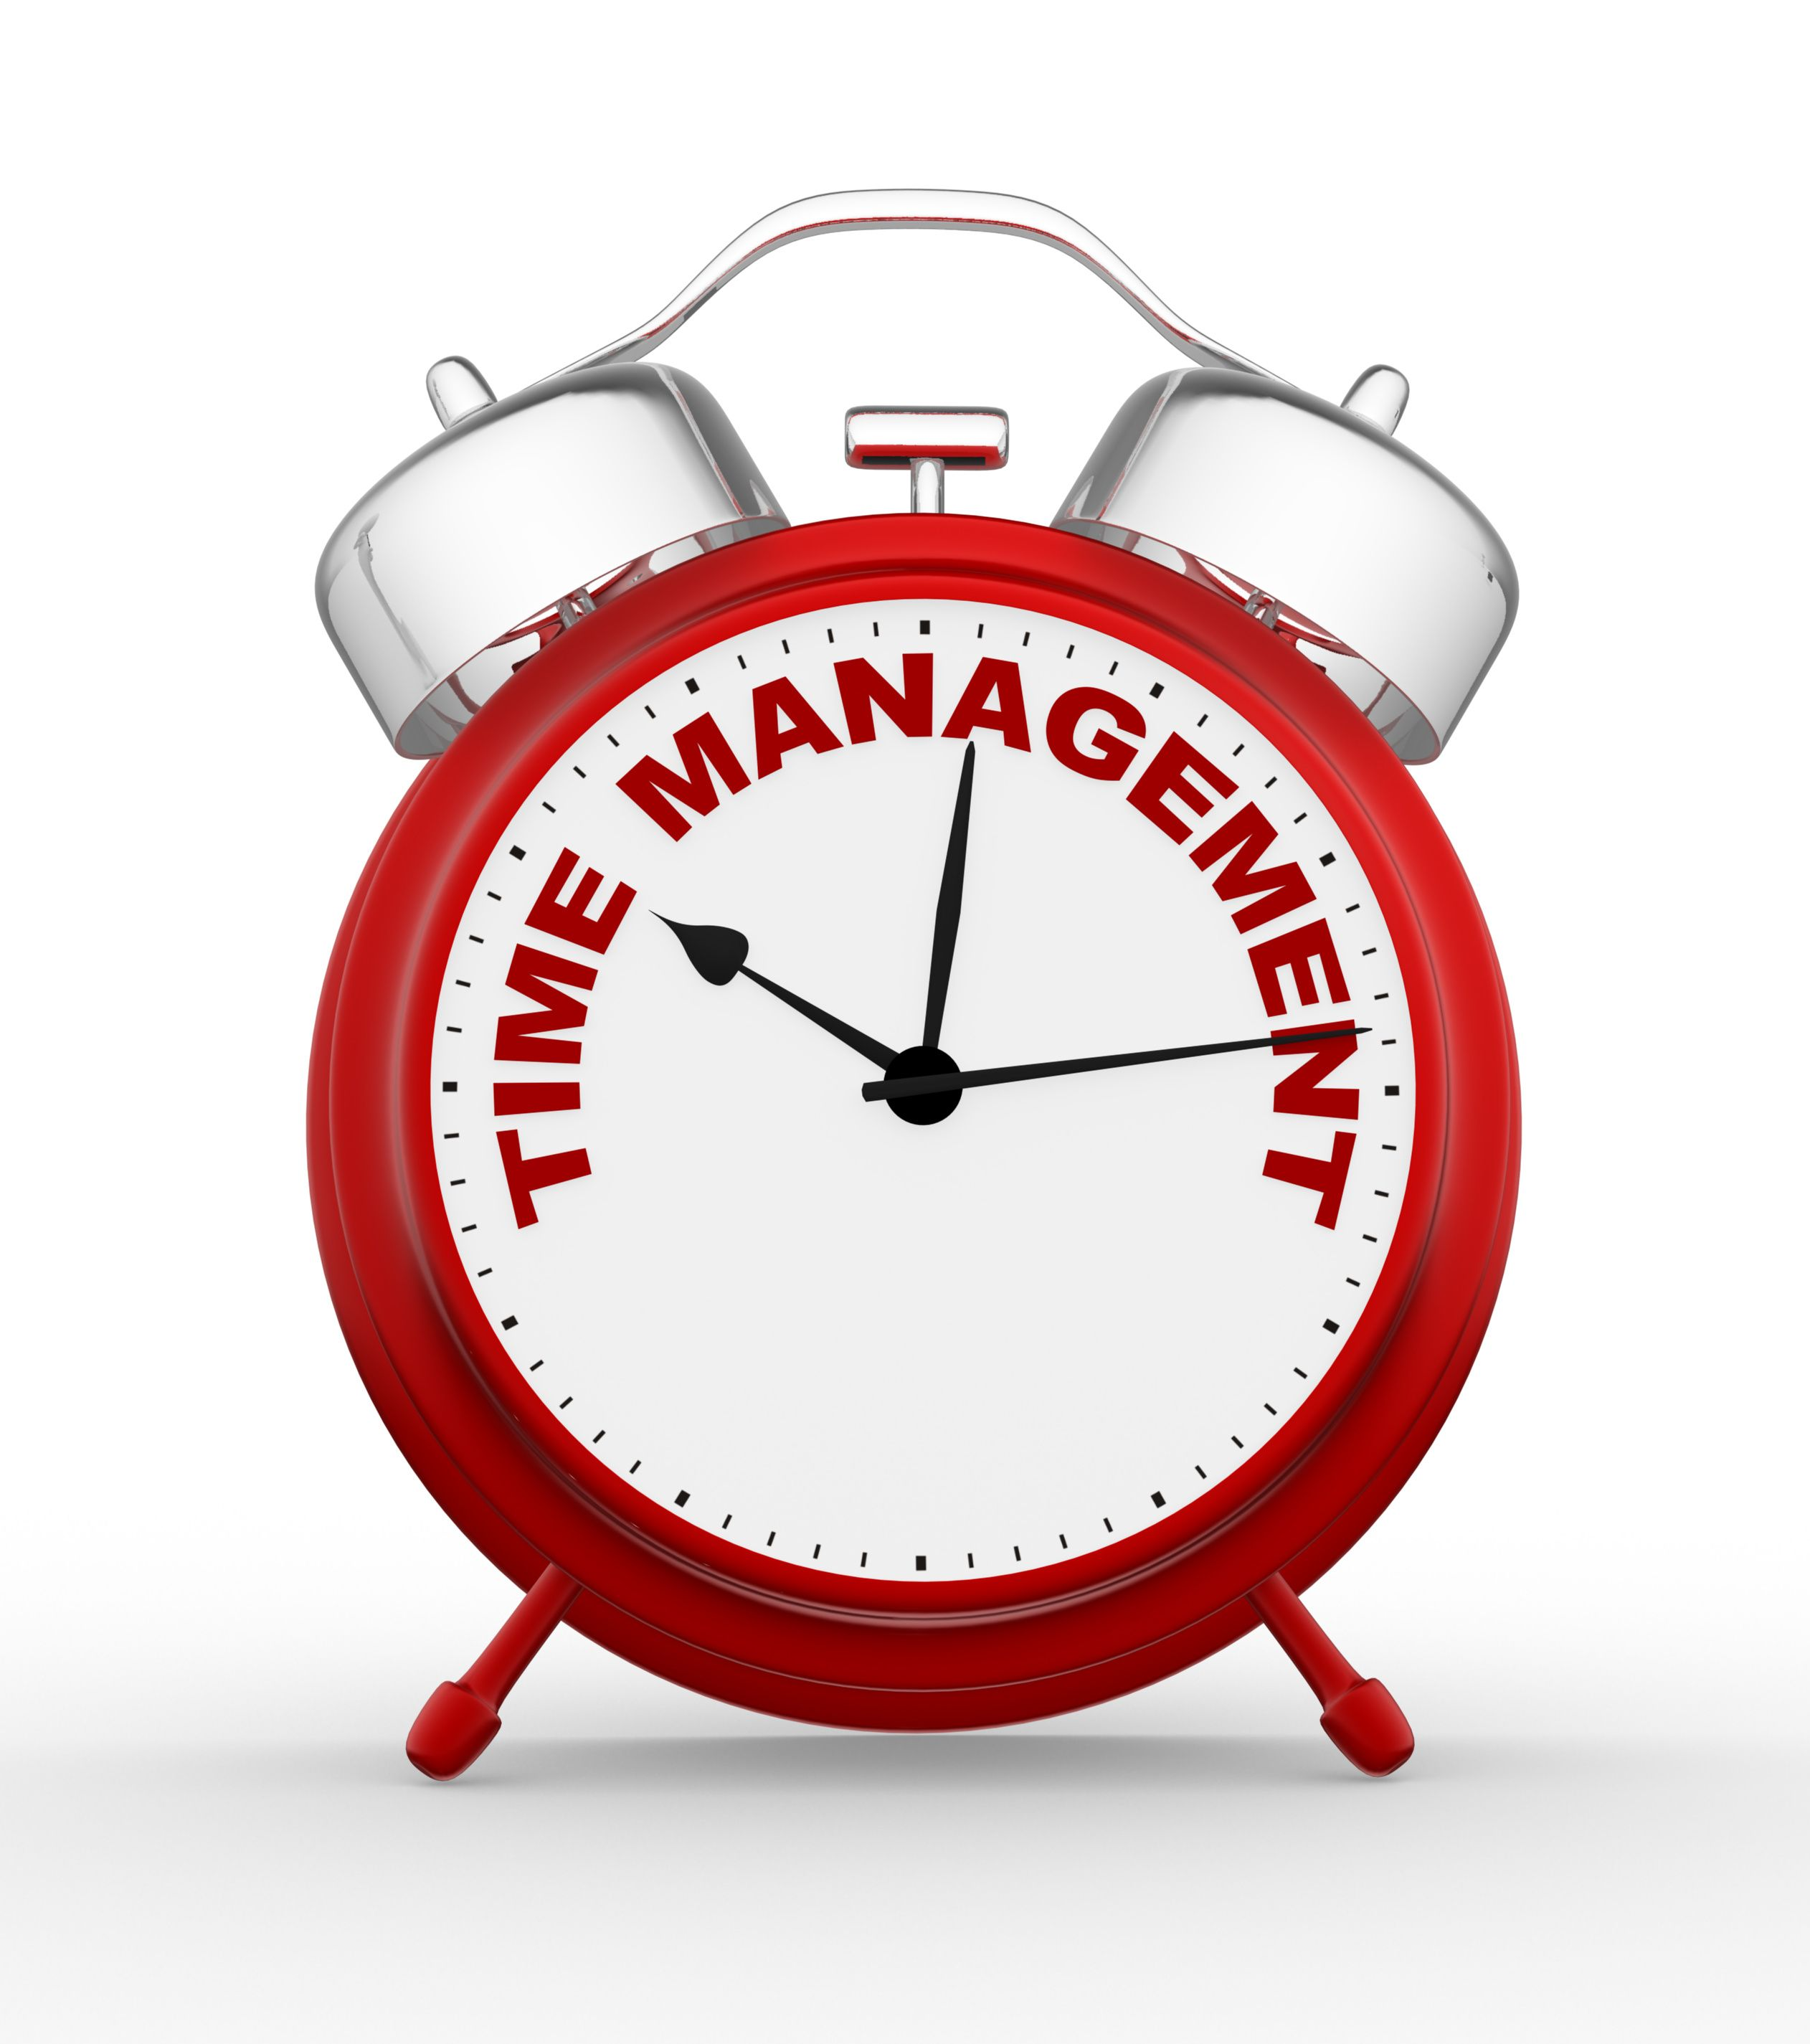 Many Dyslexics Have Difficulty With Organization And Time